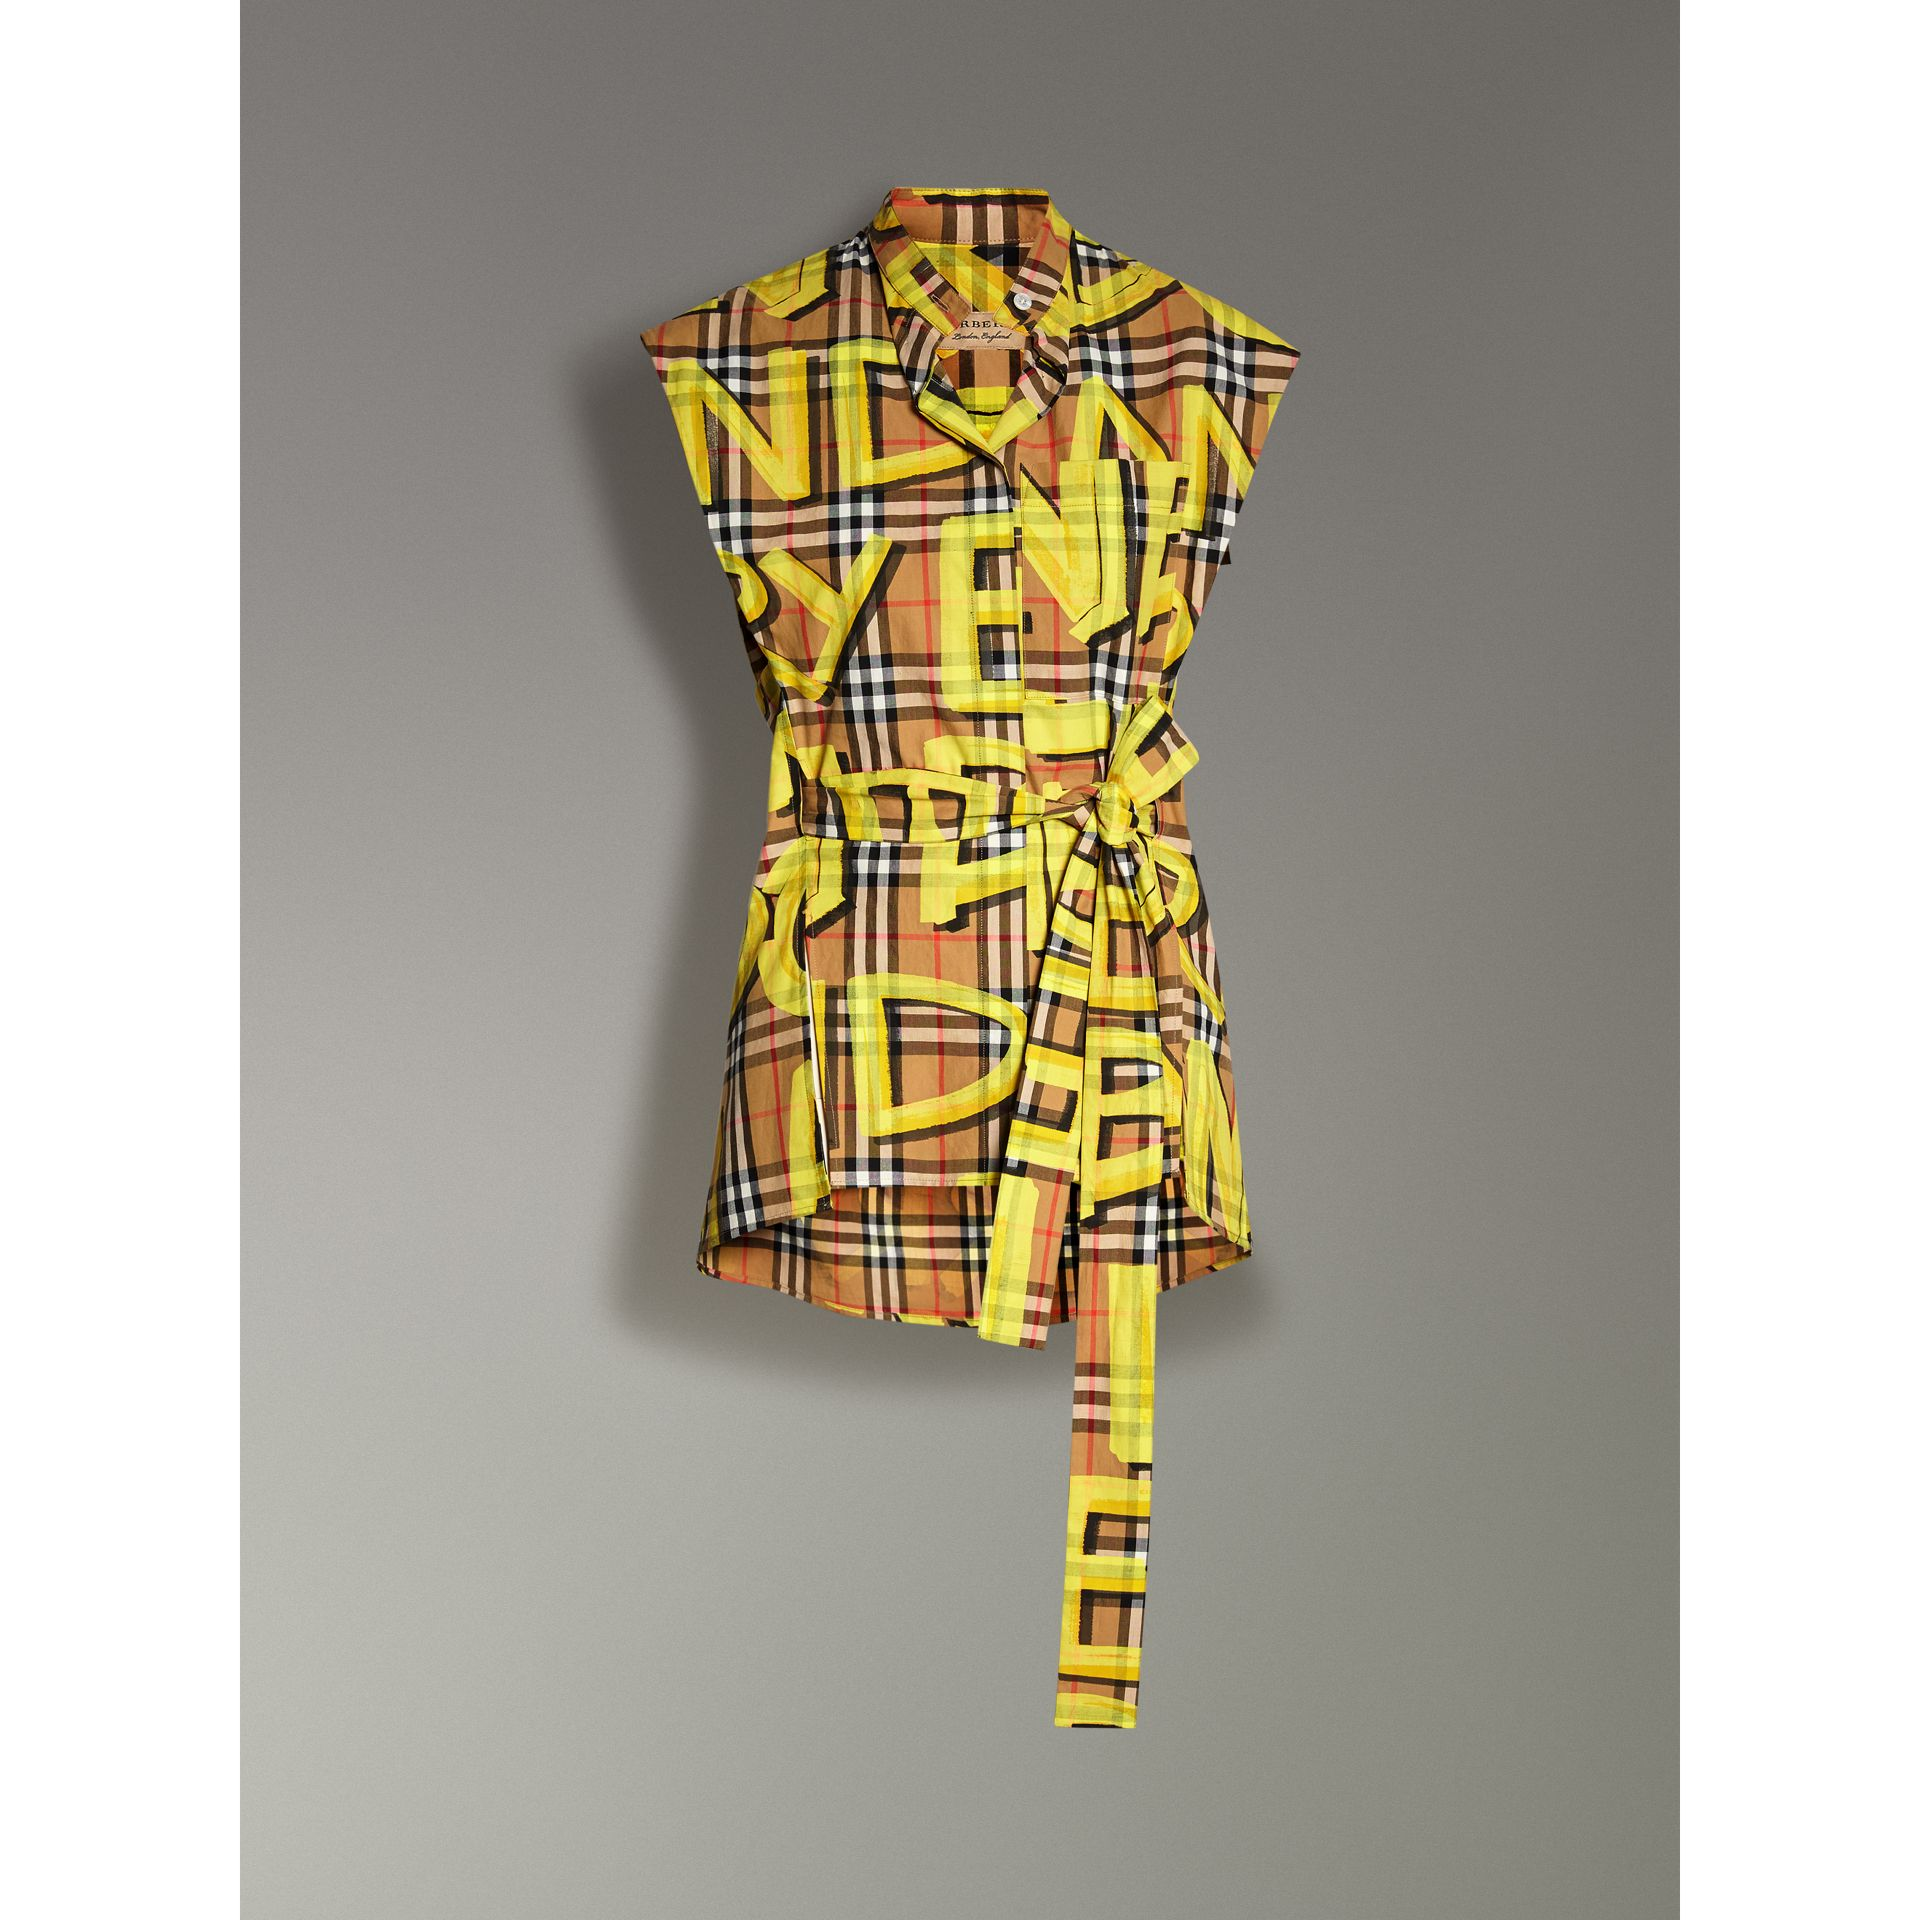 Sleeveless Graffiti Print Vintage Check Cotton Shirt in Bright Yellow - Women | Burberry Australia - gallery image 3